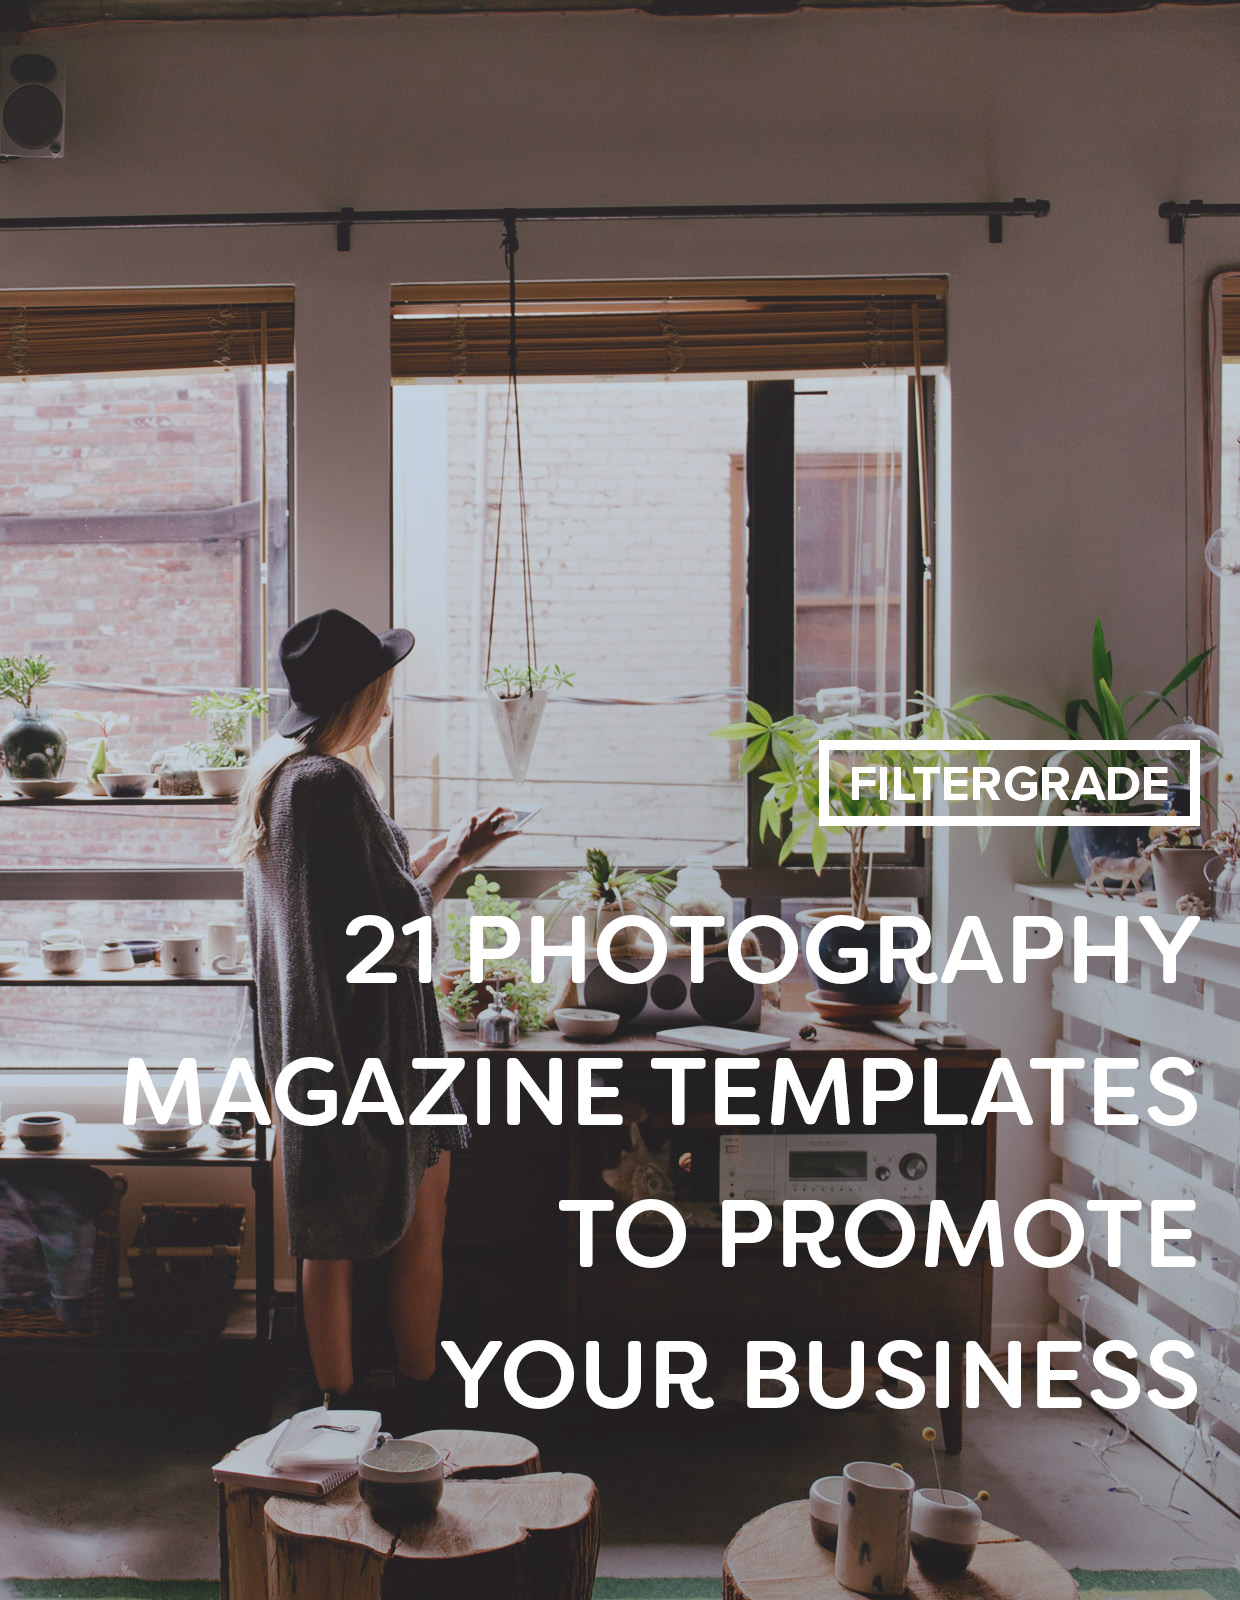 Useful photography magazine templates for marketing and promoting your photography business.